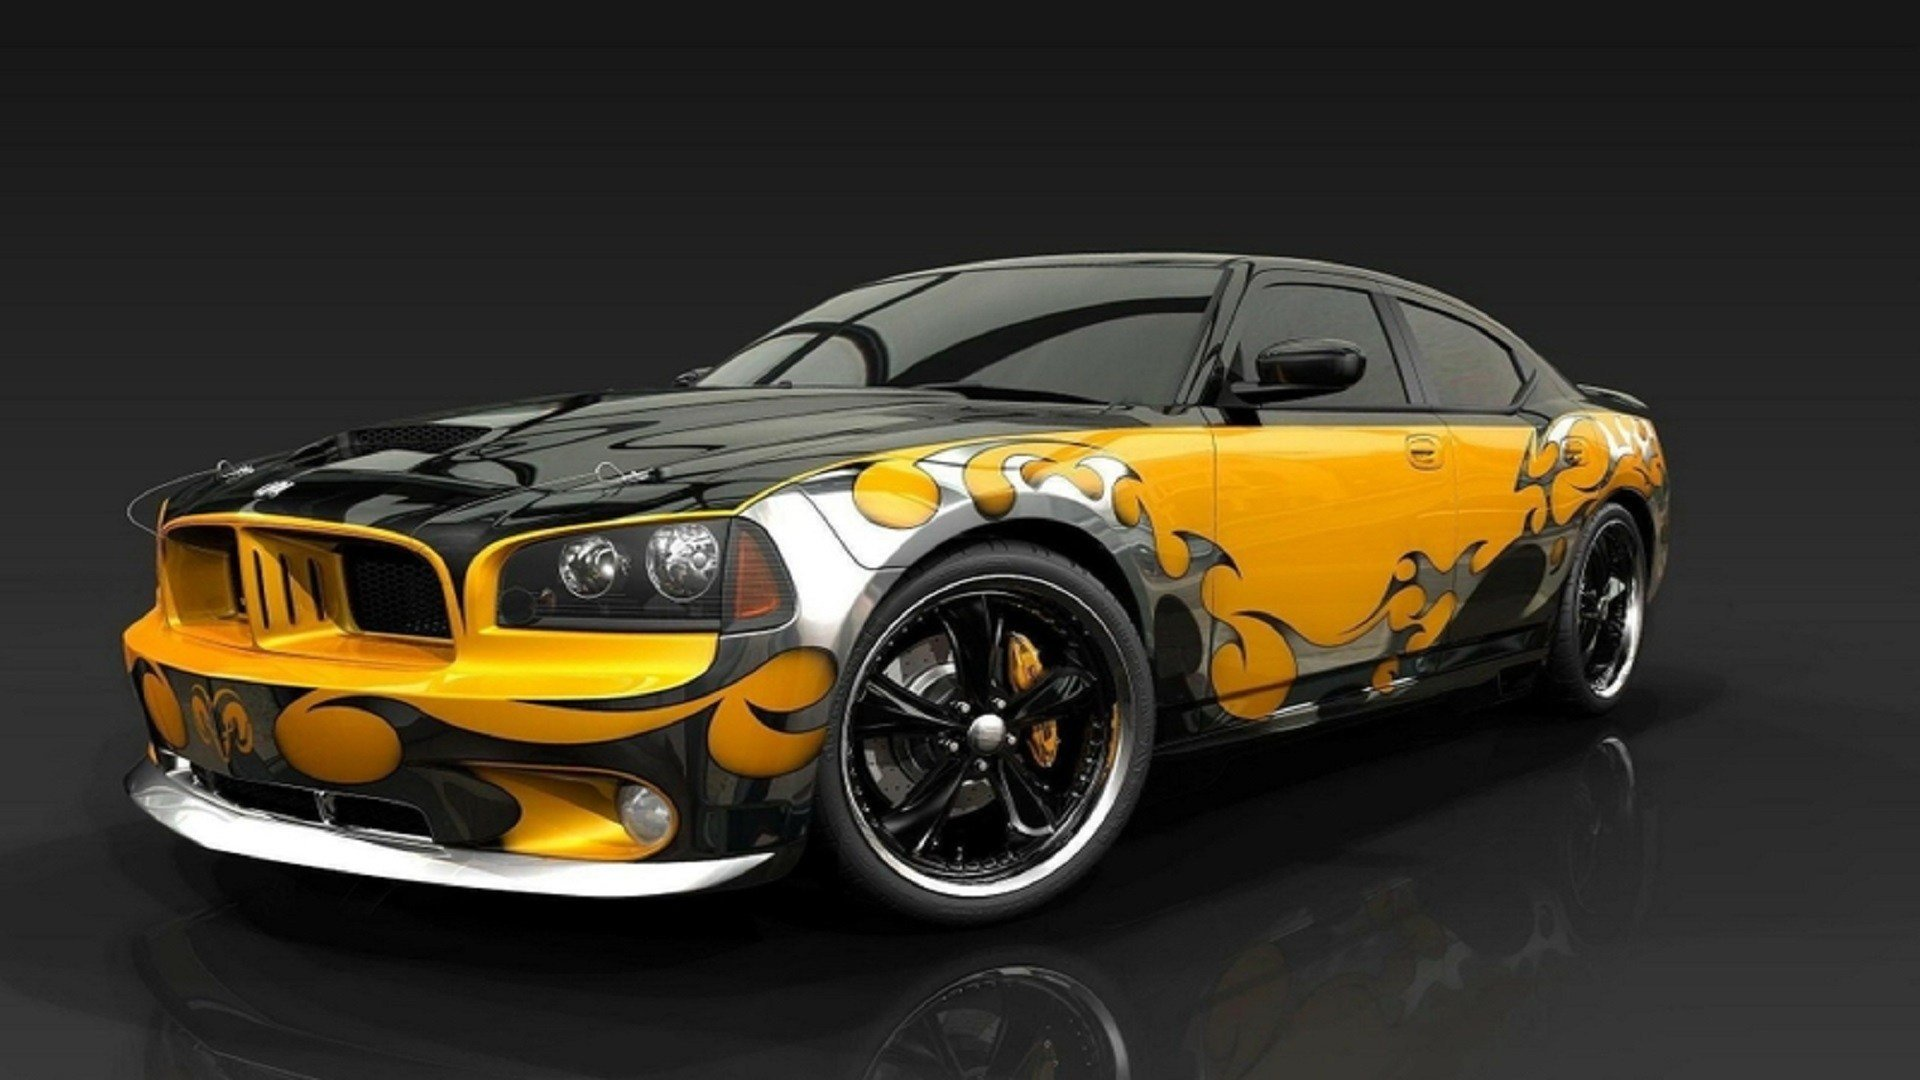 Latest Muscle Car Wallpapers Hd Free Download For Desktop Mobile Free Download